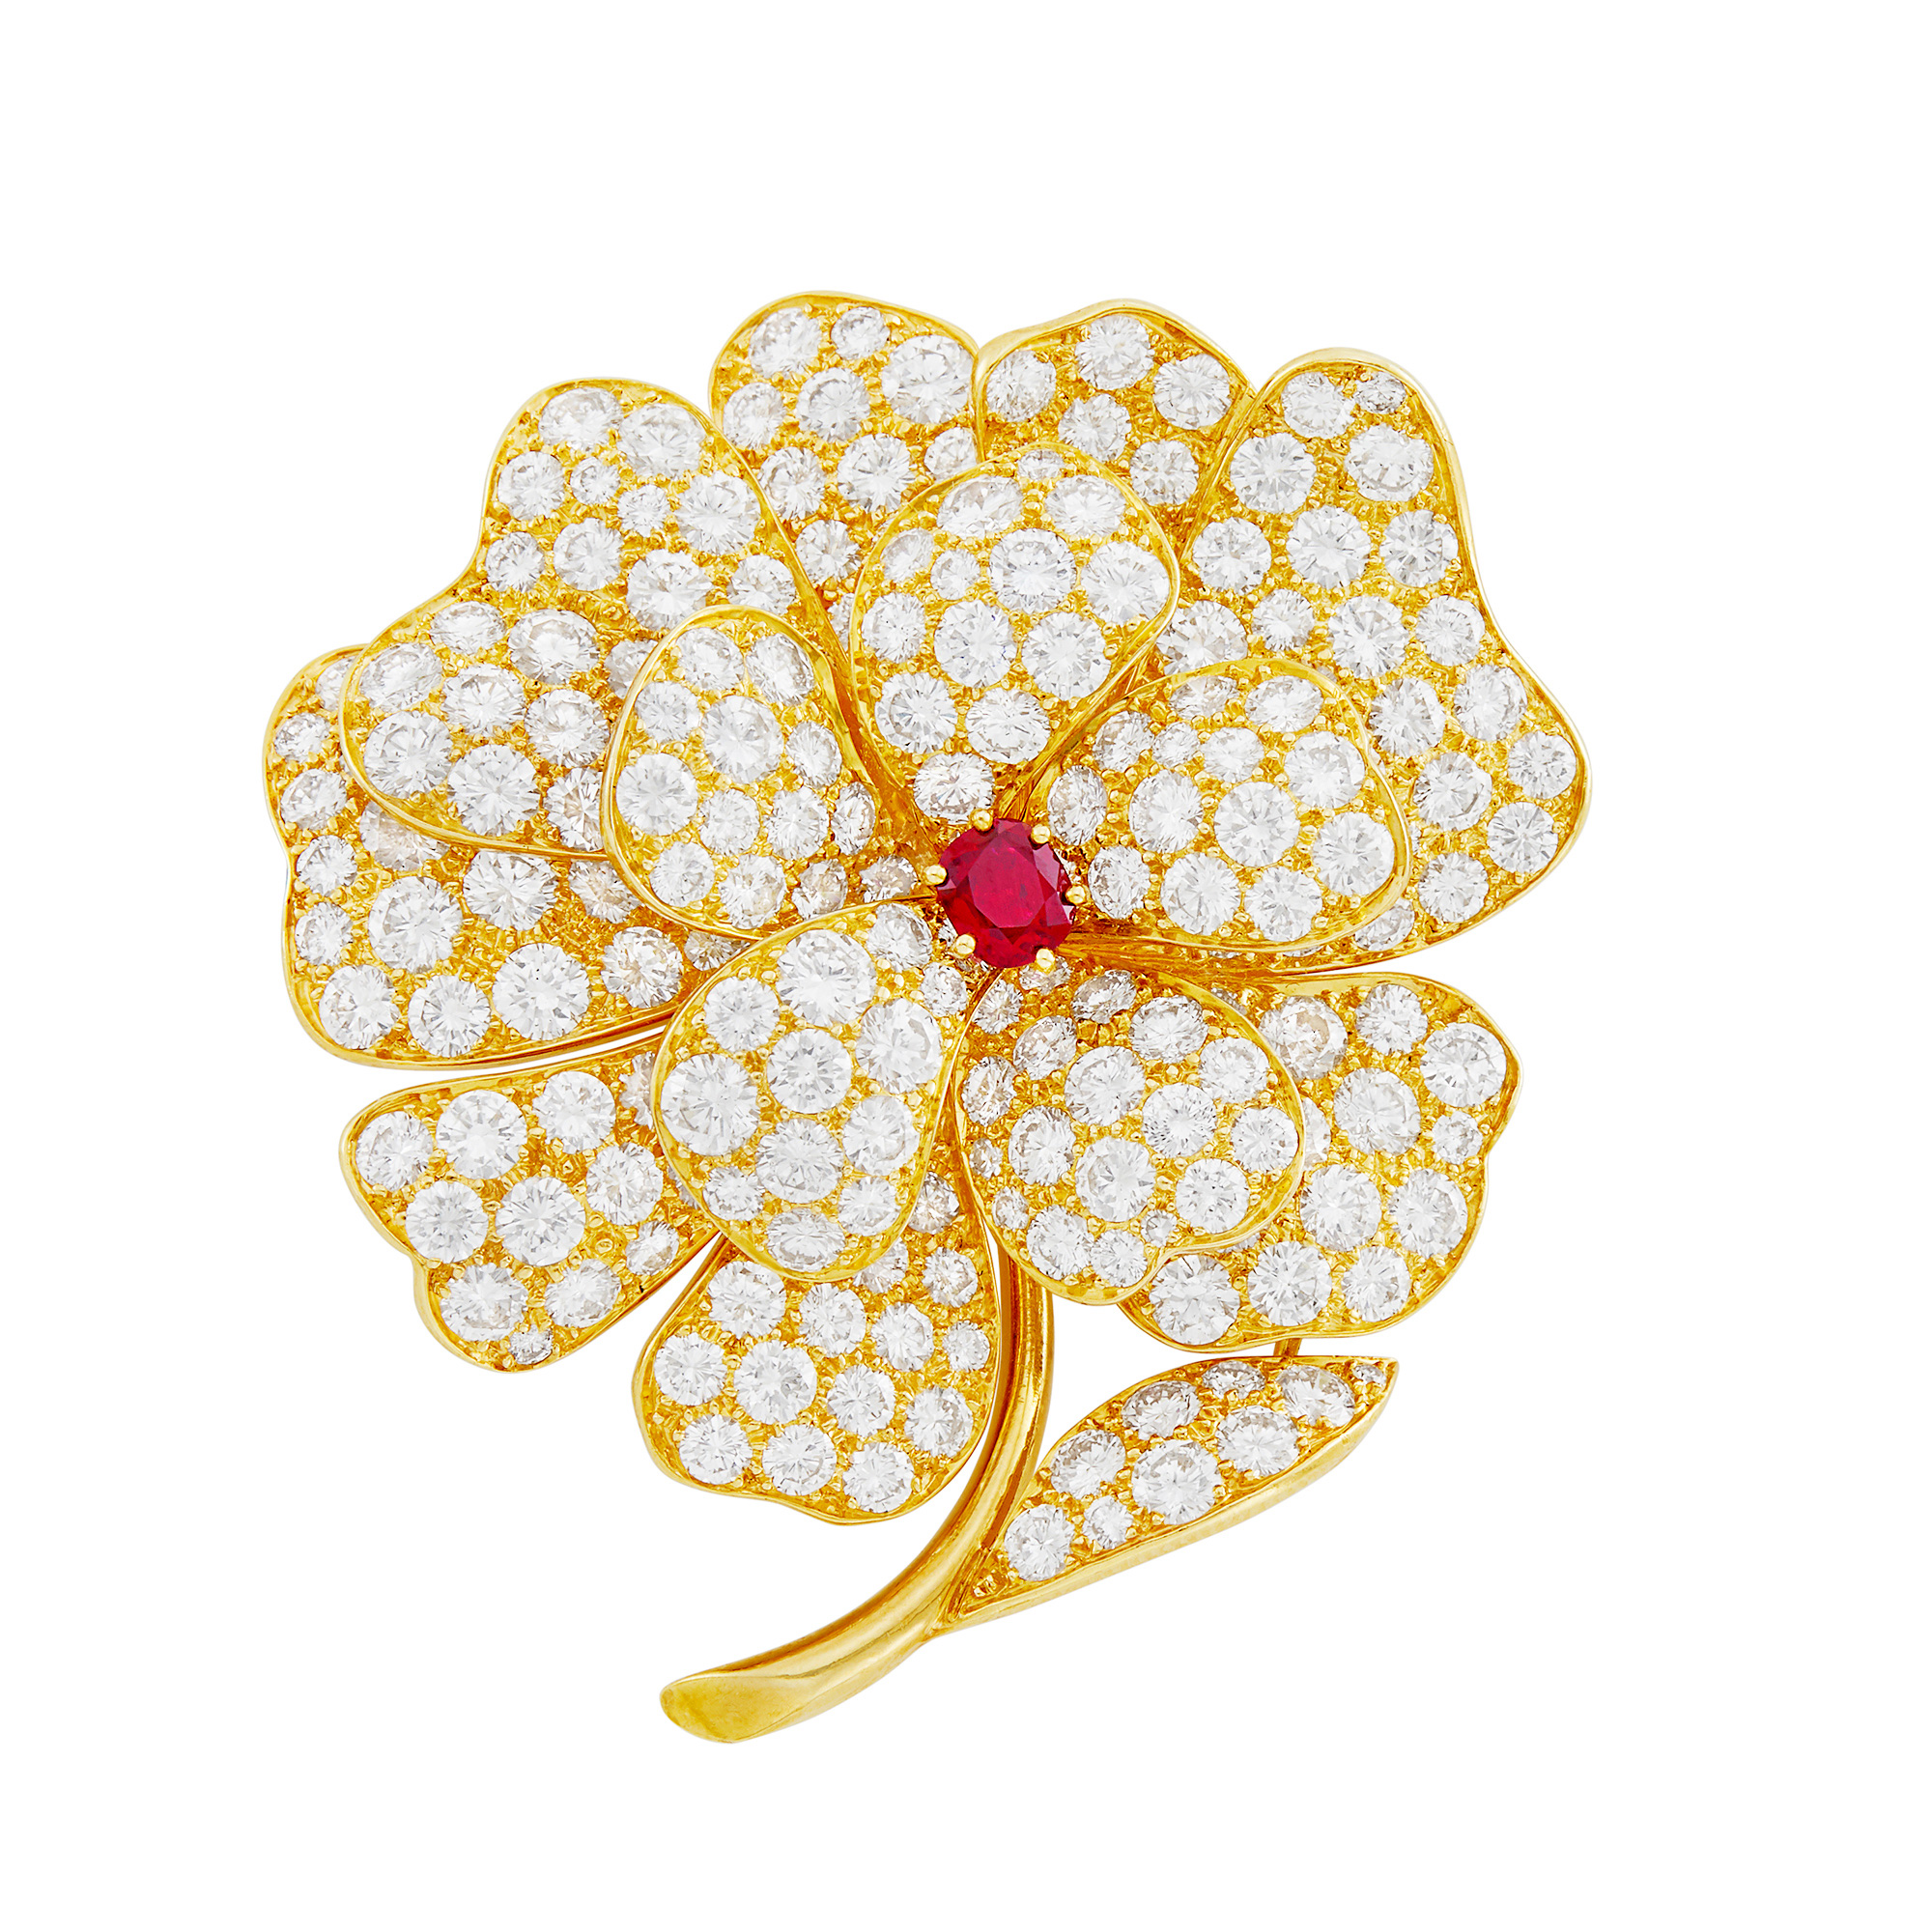 Lot image - Gold, Ruby and Diamond Flower Brooch, Van Cleef & Arpels